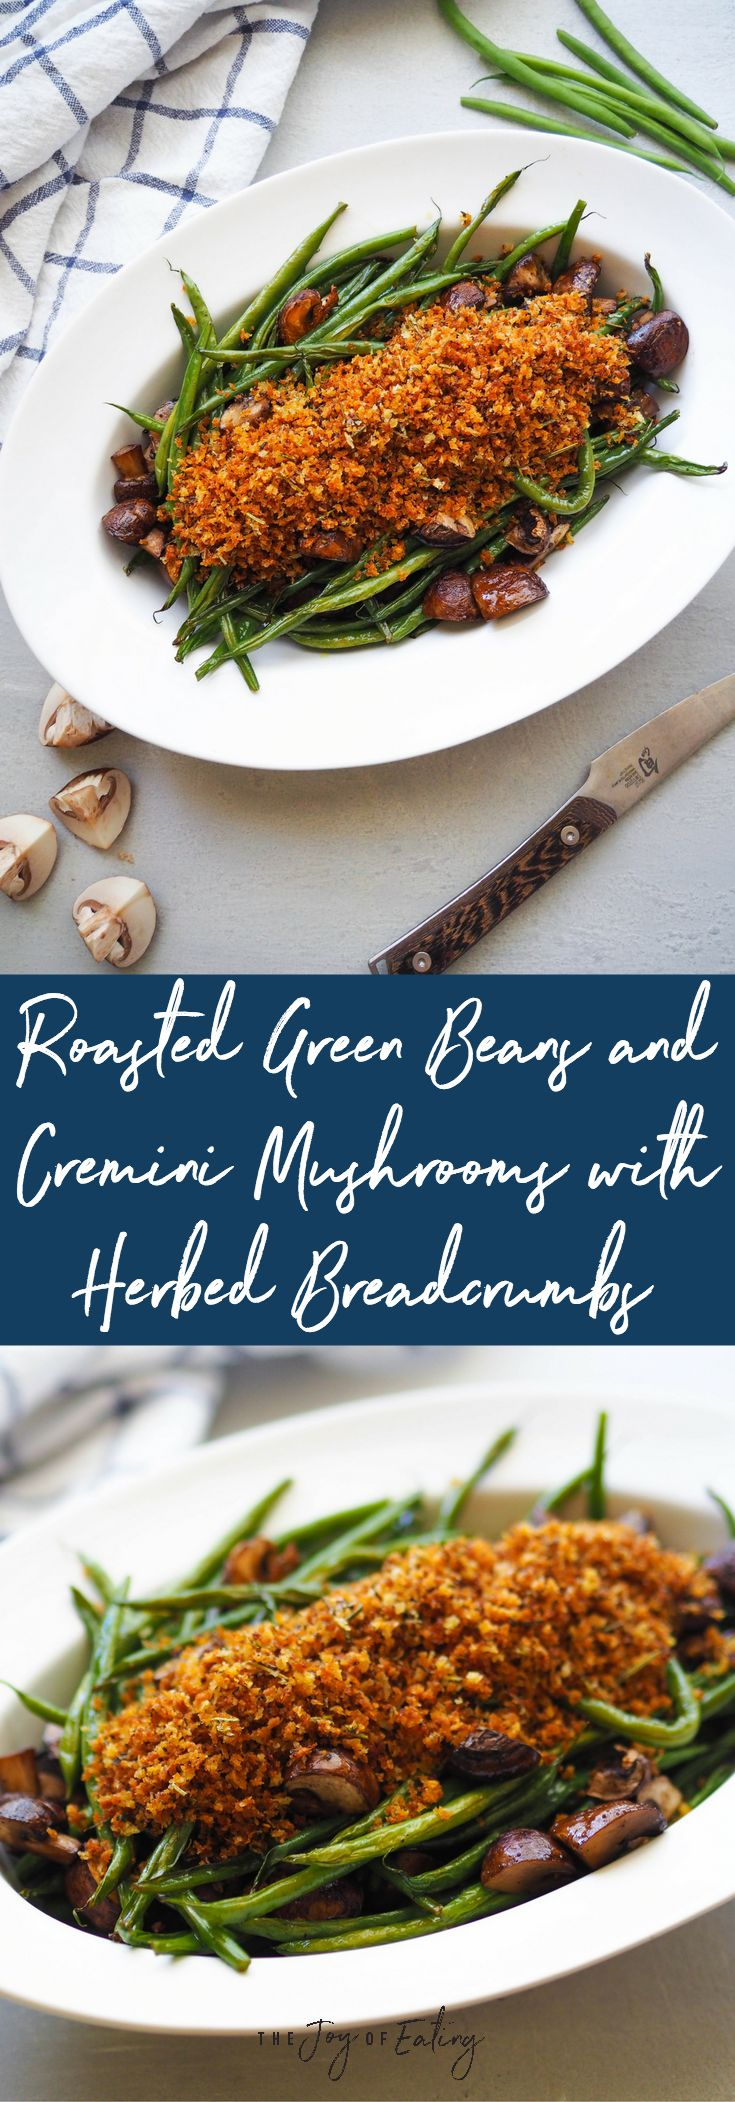 A healthier and tastier take on green bean casserole - because who likes condensed soup anyway? This recipe for roasted green beans and mushrooms with herbed breadcrumbs keeps all the flavor of the original. #healthy #sidedish #healthyrecipe #roastedvegetables #greenbean #mushroom #holiday #holidayrecipe